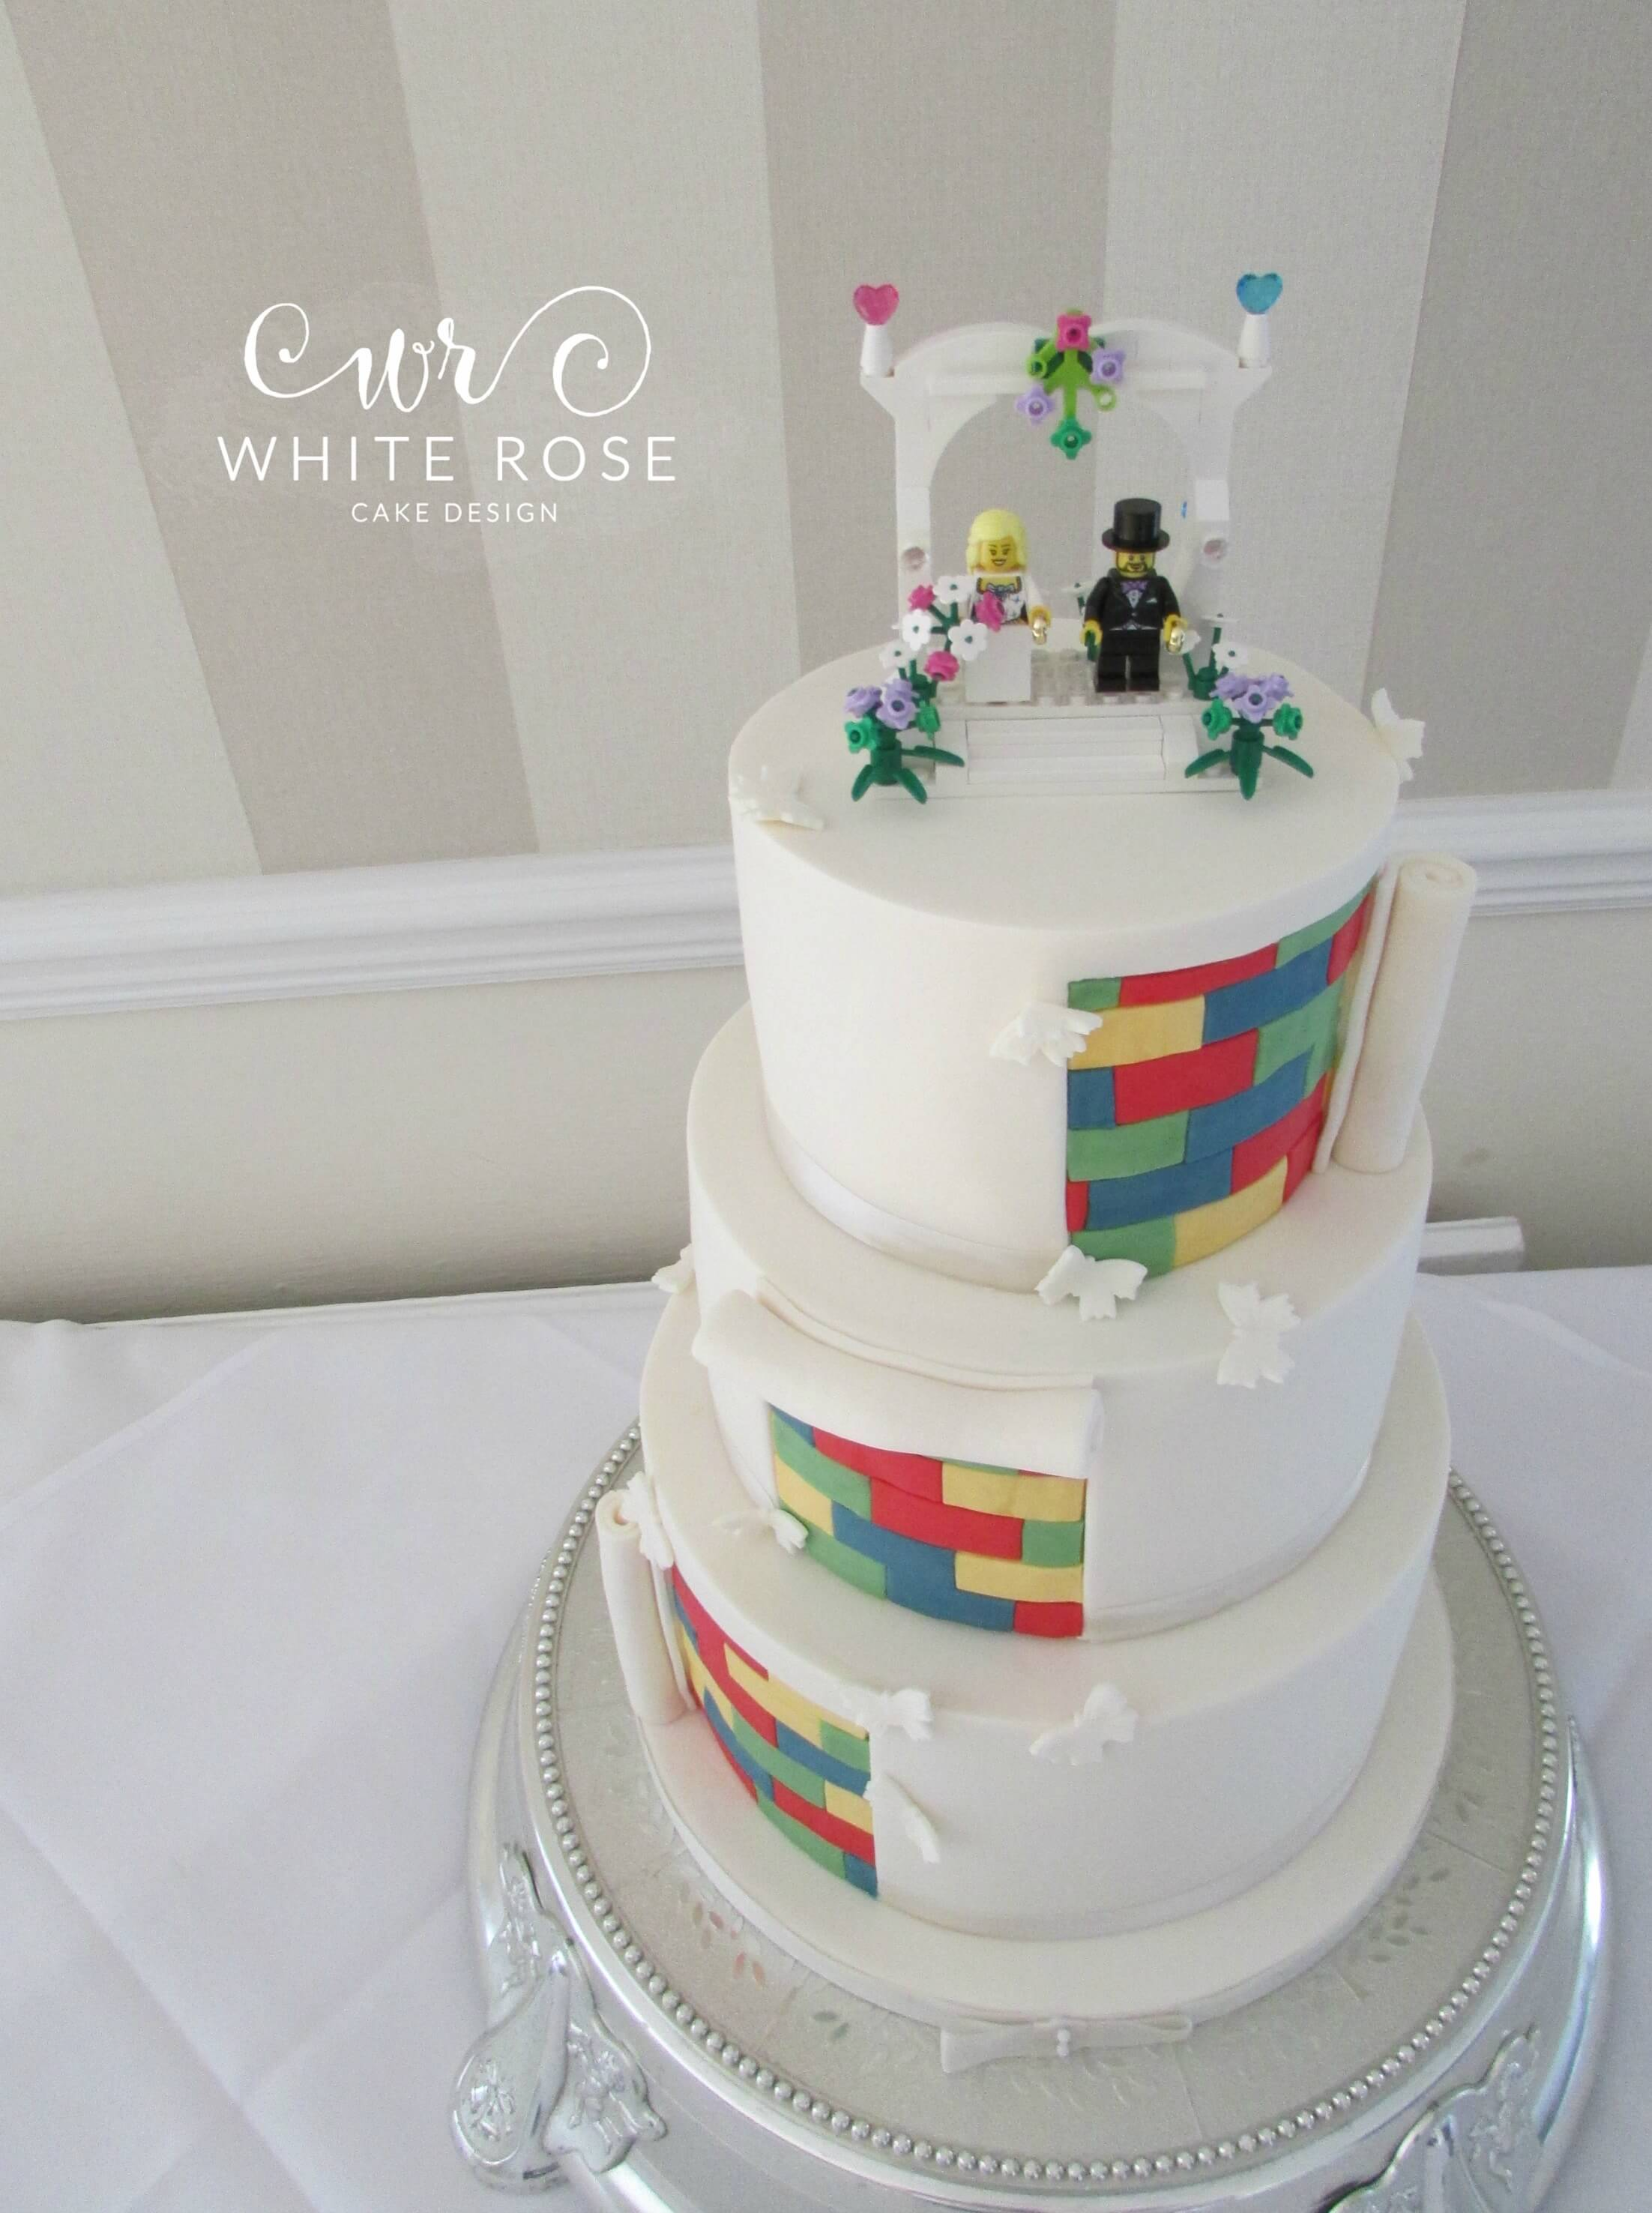 Three Tier Lego Themed Wedding Cake Huddersfield - White Rose Cake ...